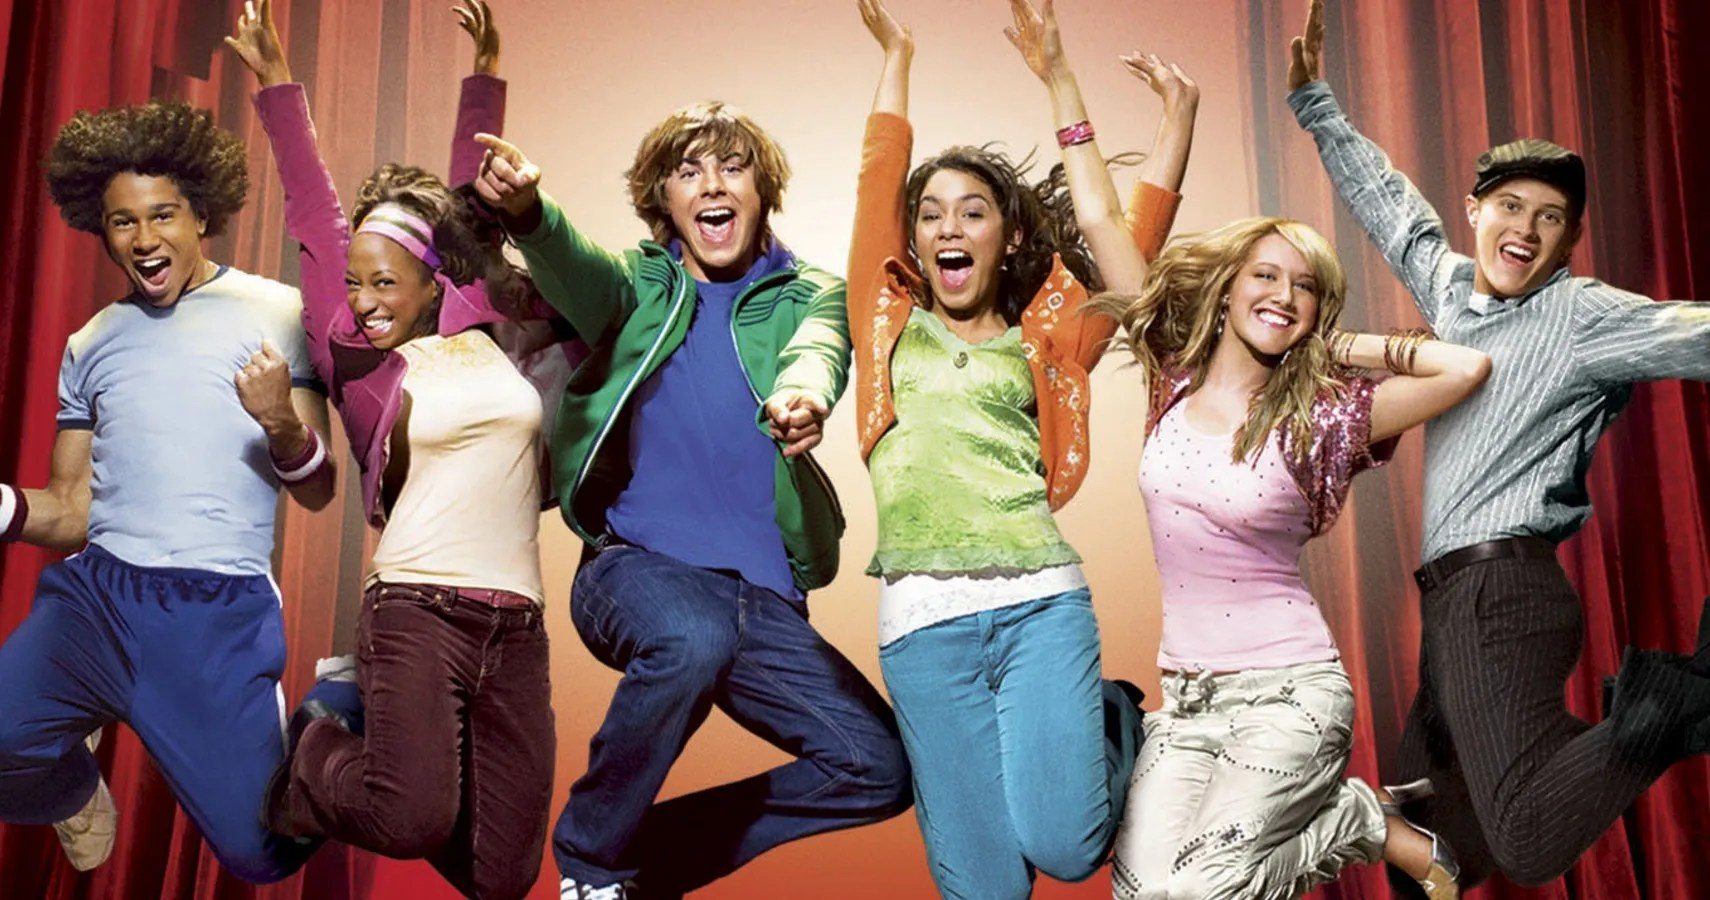 10 Things About The High School Musical Trilogy That Make